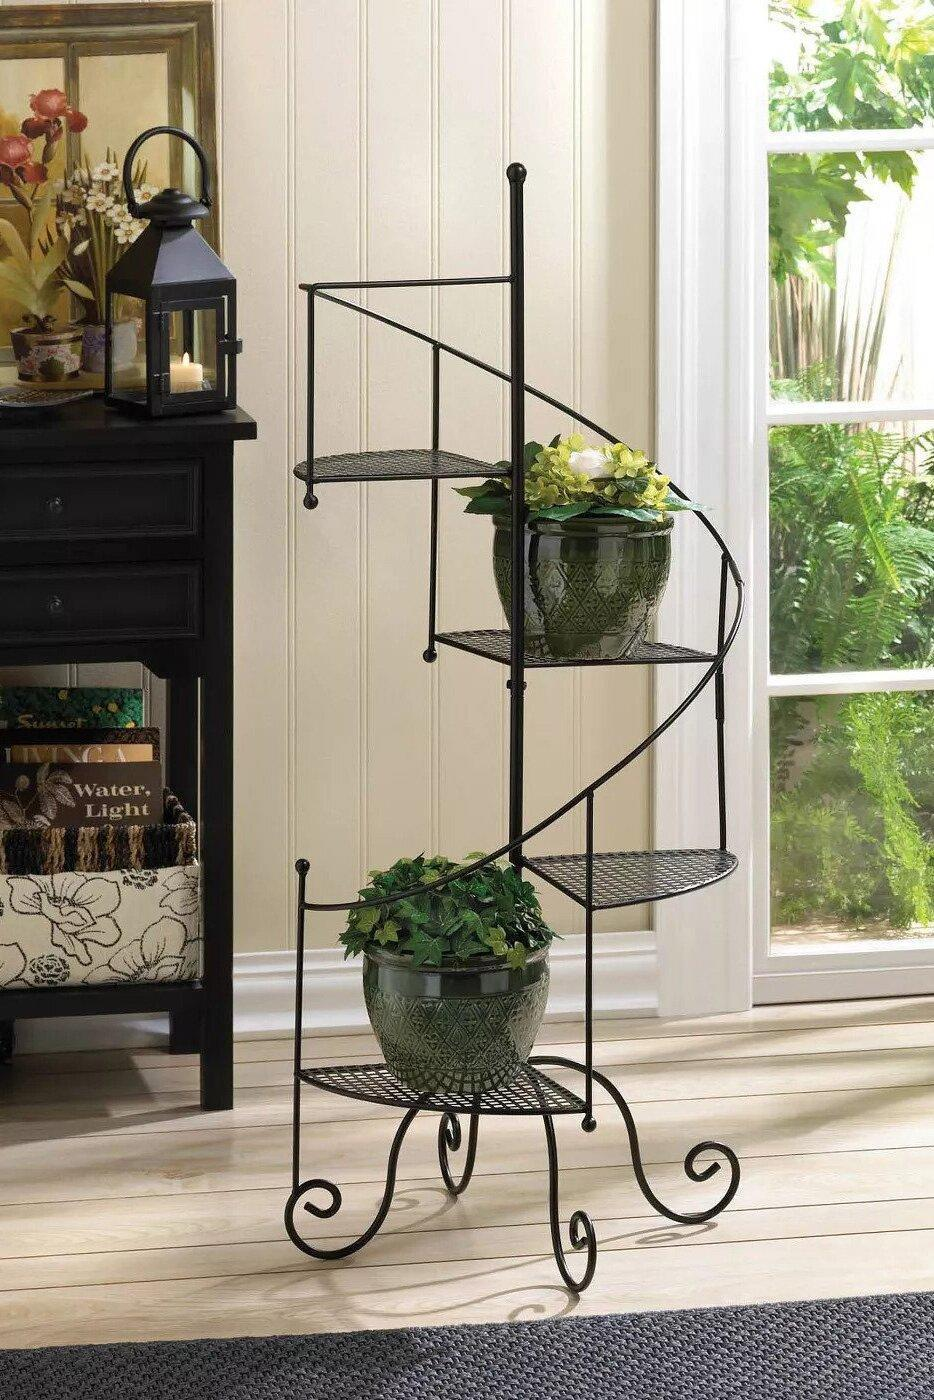 Zings & Thingz Indoor/Outdoor Iron Spiral Showcase Plant Stand